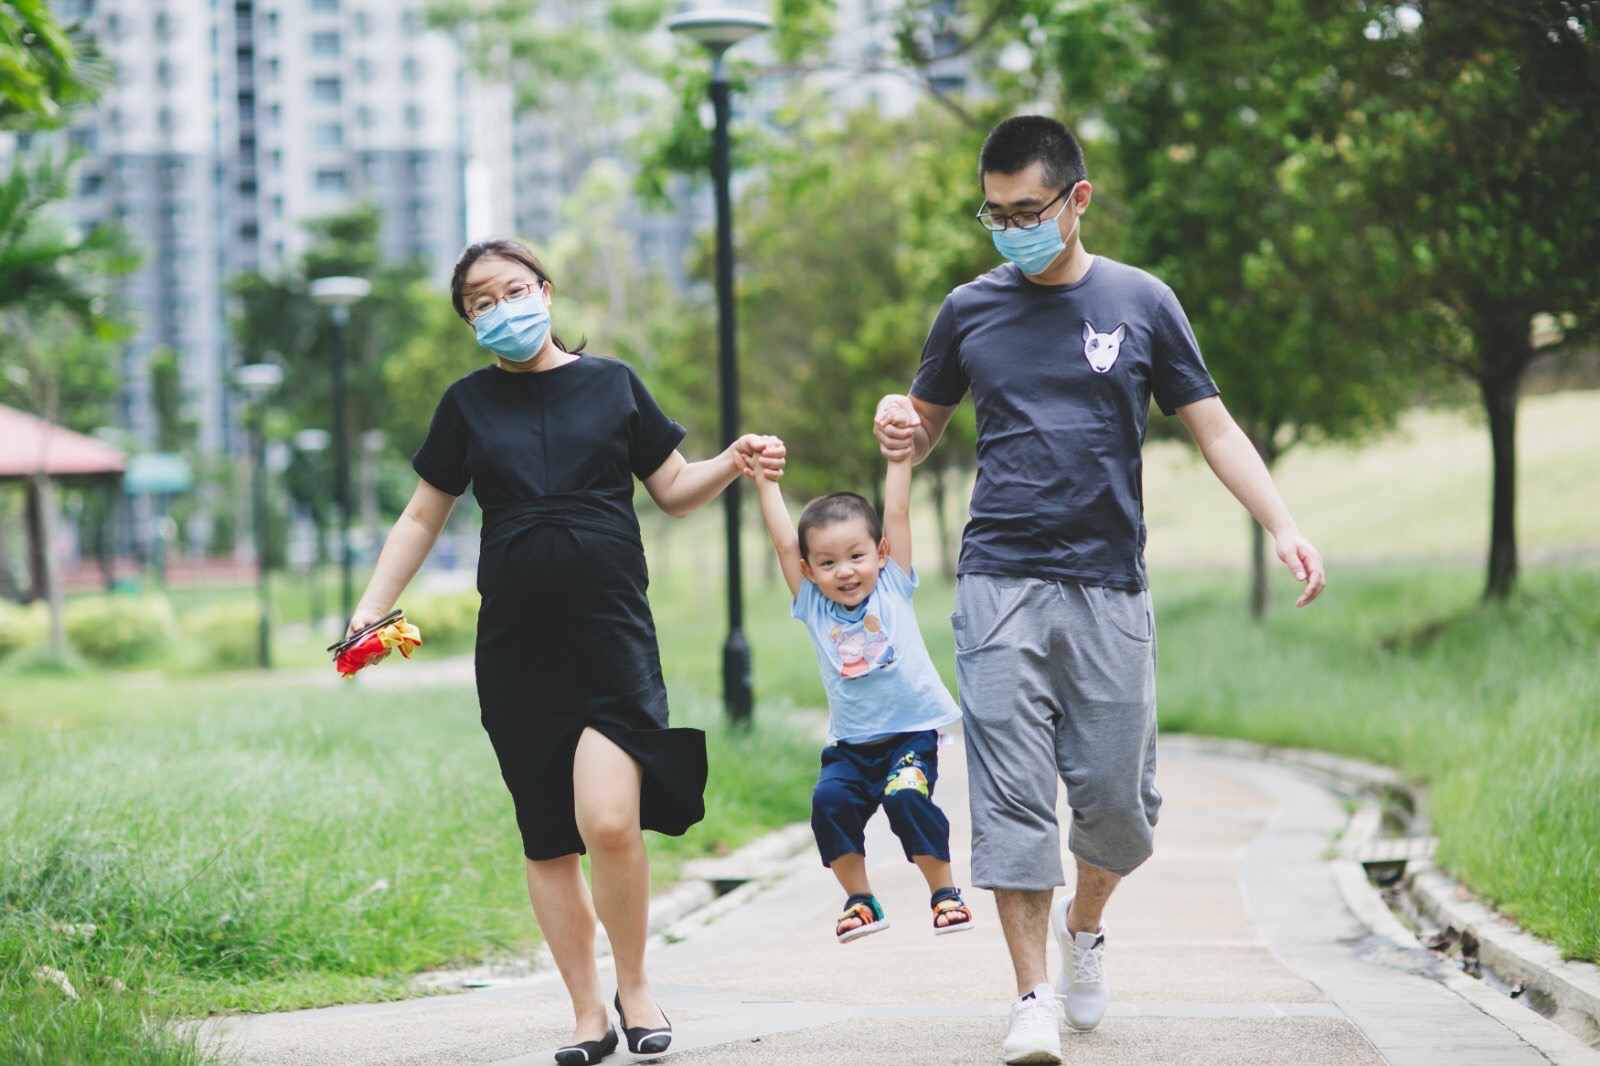 Lin Nan and his family spending time during the pandemic.